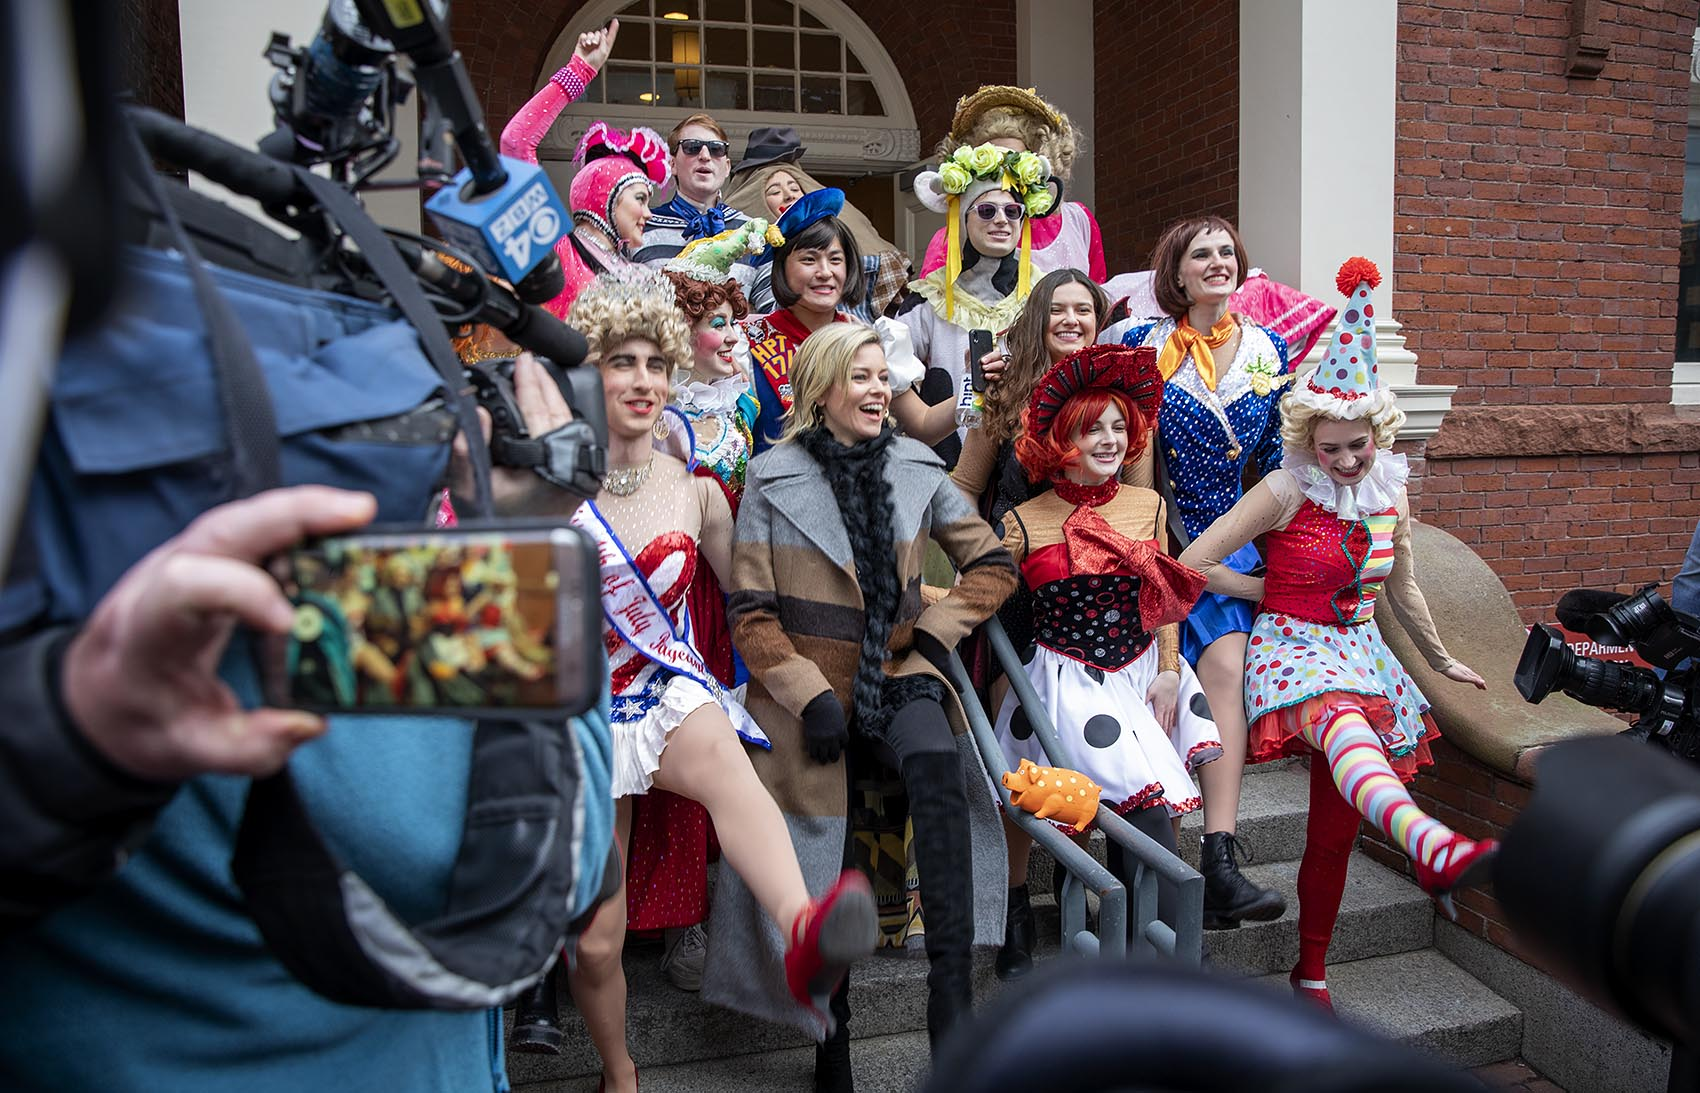 Elizabeth Banks, Hasty Pudding Theatricals' 2020 Woman of the Year, lines up with Hasty Pudding actors for a photo on the steps of Farkas Hall. (Robin Lubbock/WBUR)